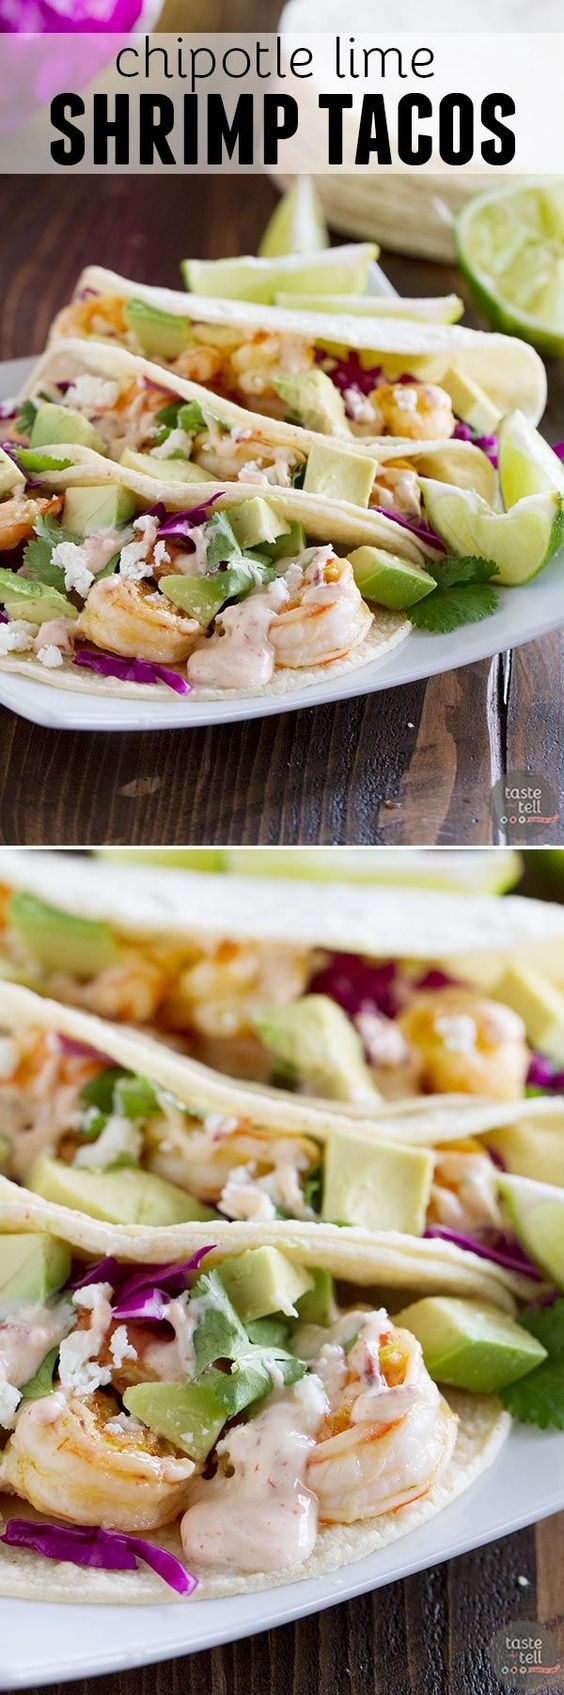 tacos shrimp taco recipes limes taco recipe no excuses dinner come ...